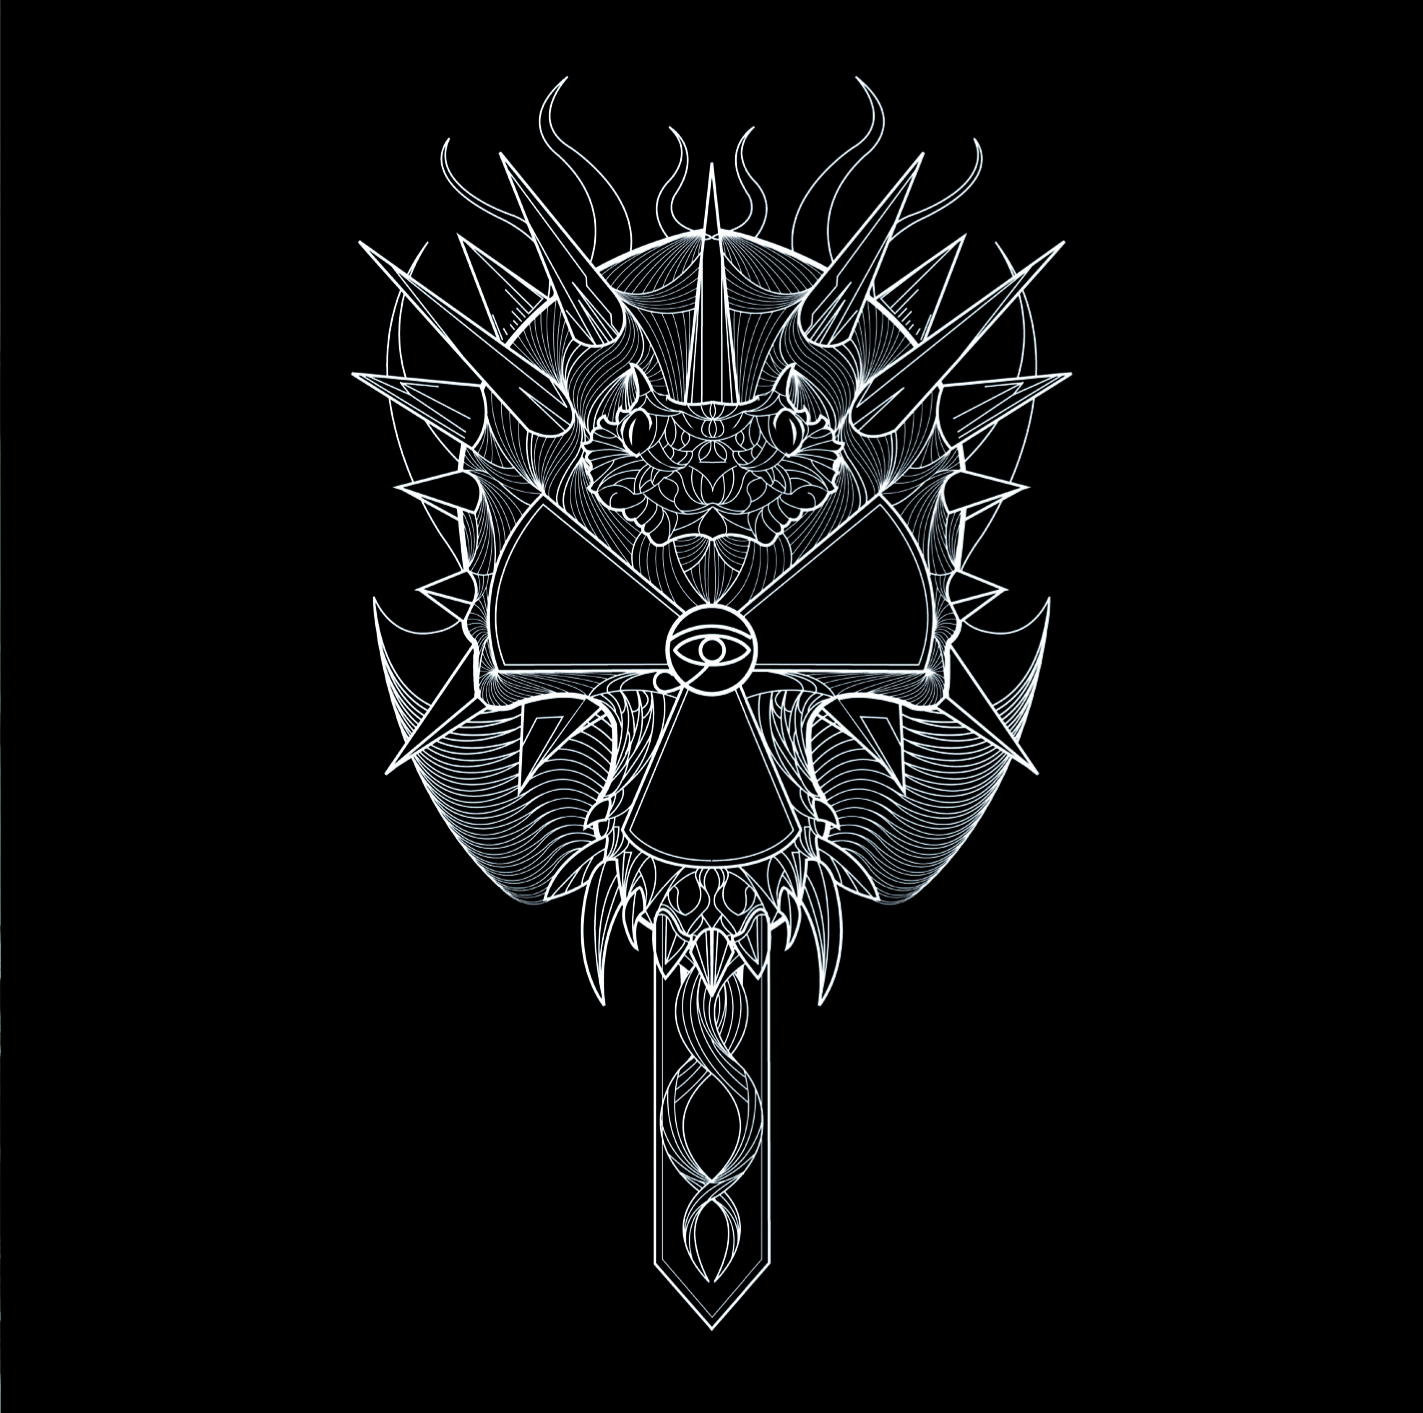 Corrosion of Conformity – Corrosion of Conformity Review